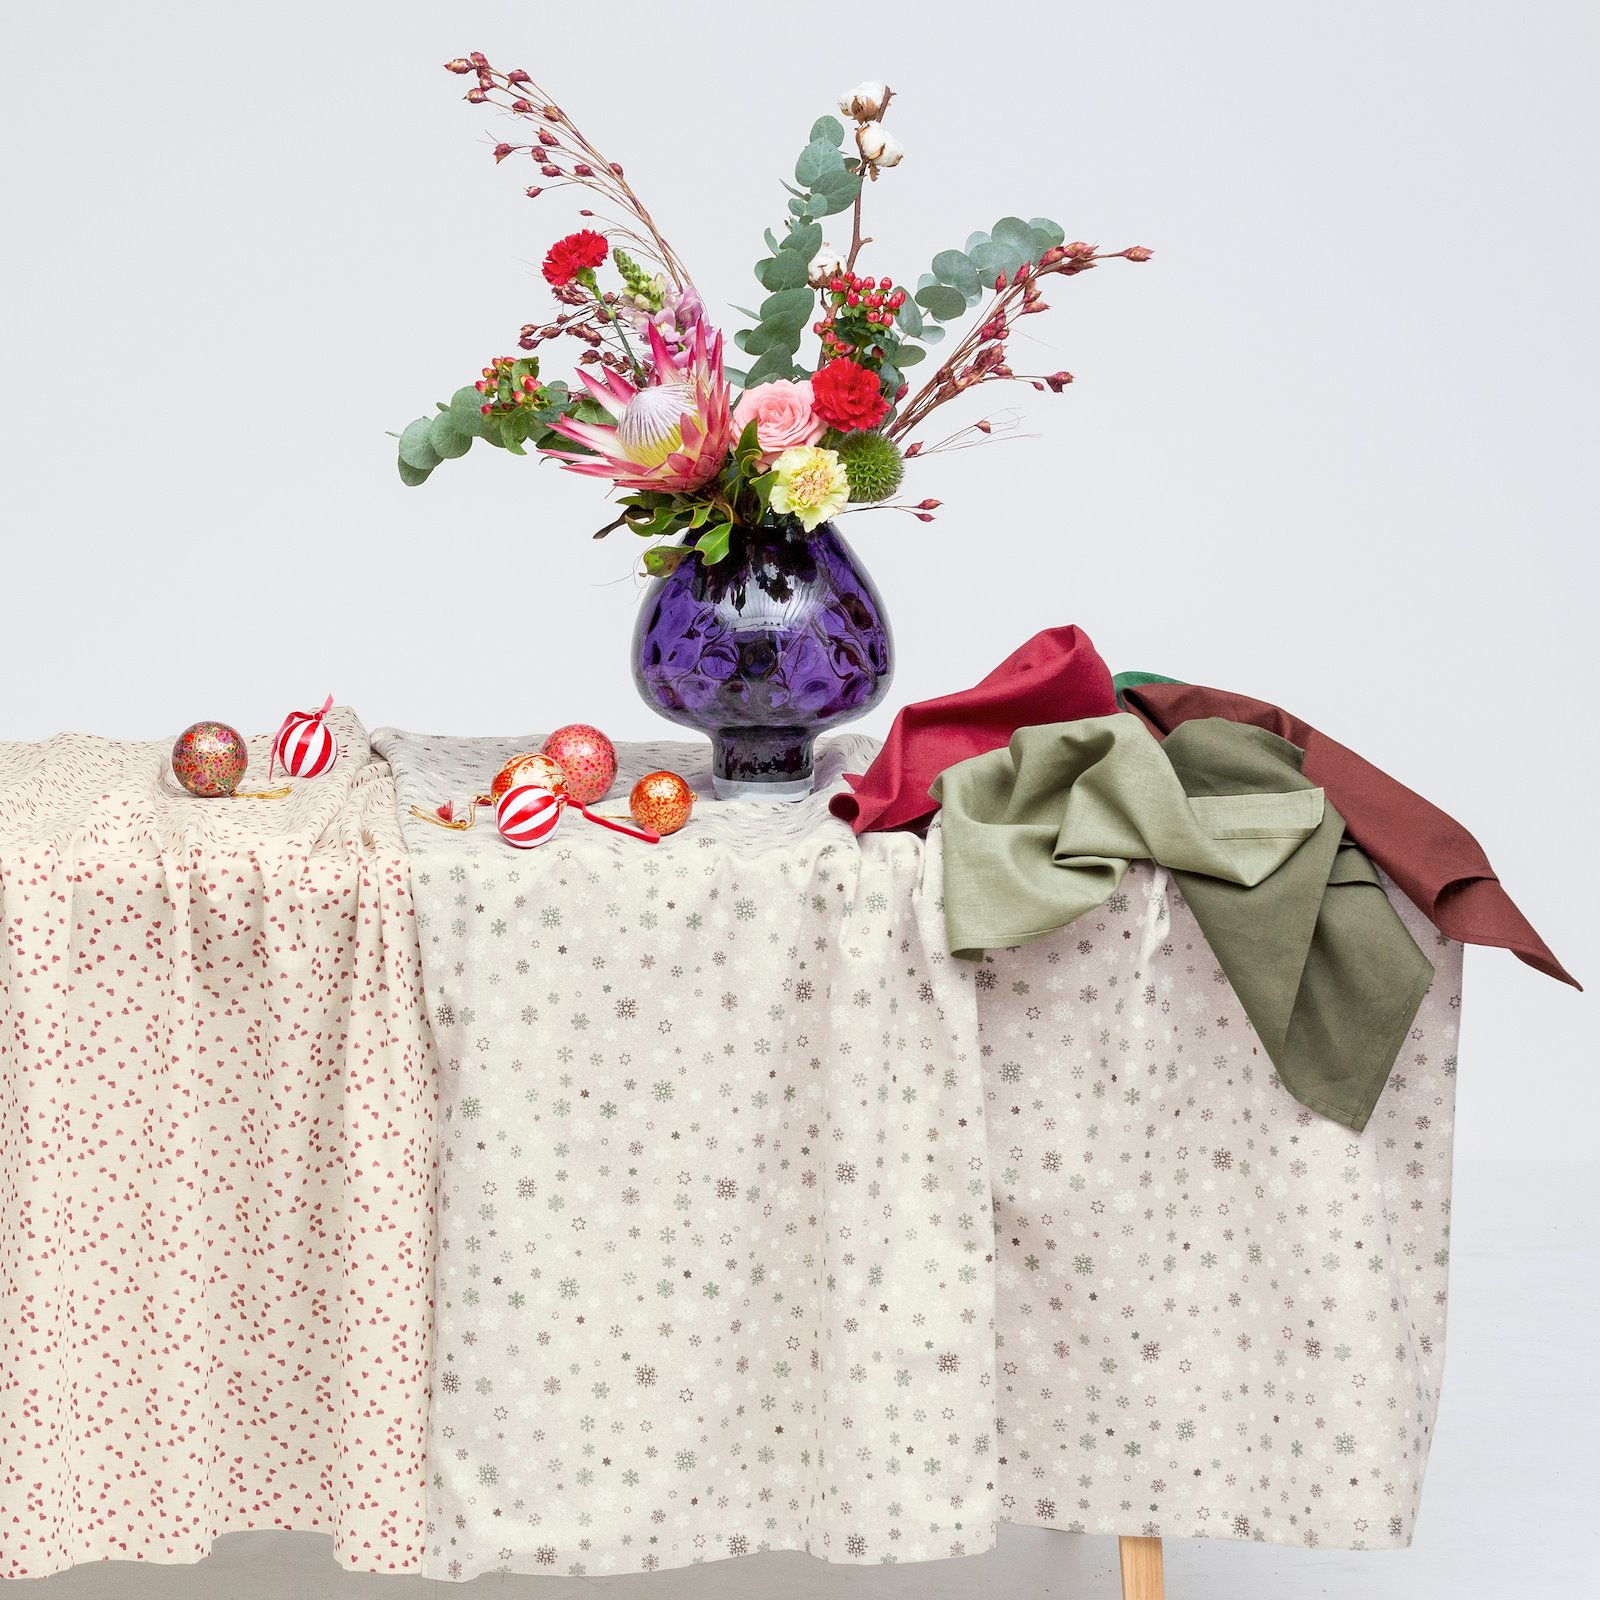 Woven cotton/linen with red hearts 410143_410144_780557_410145_410131_895946_bundle